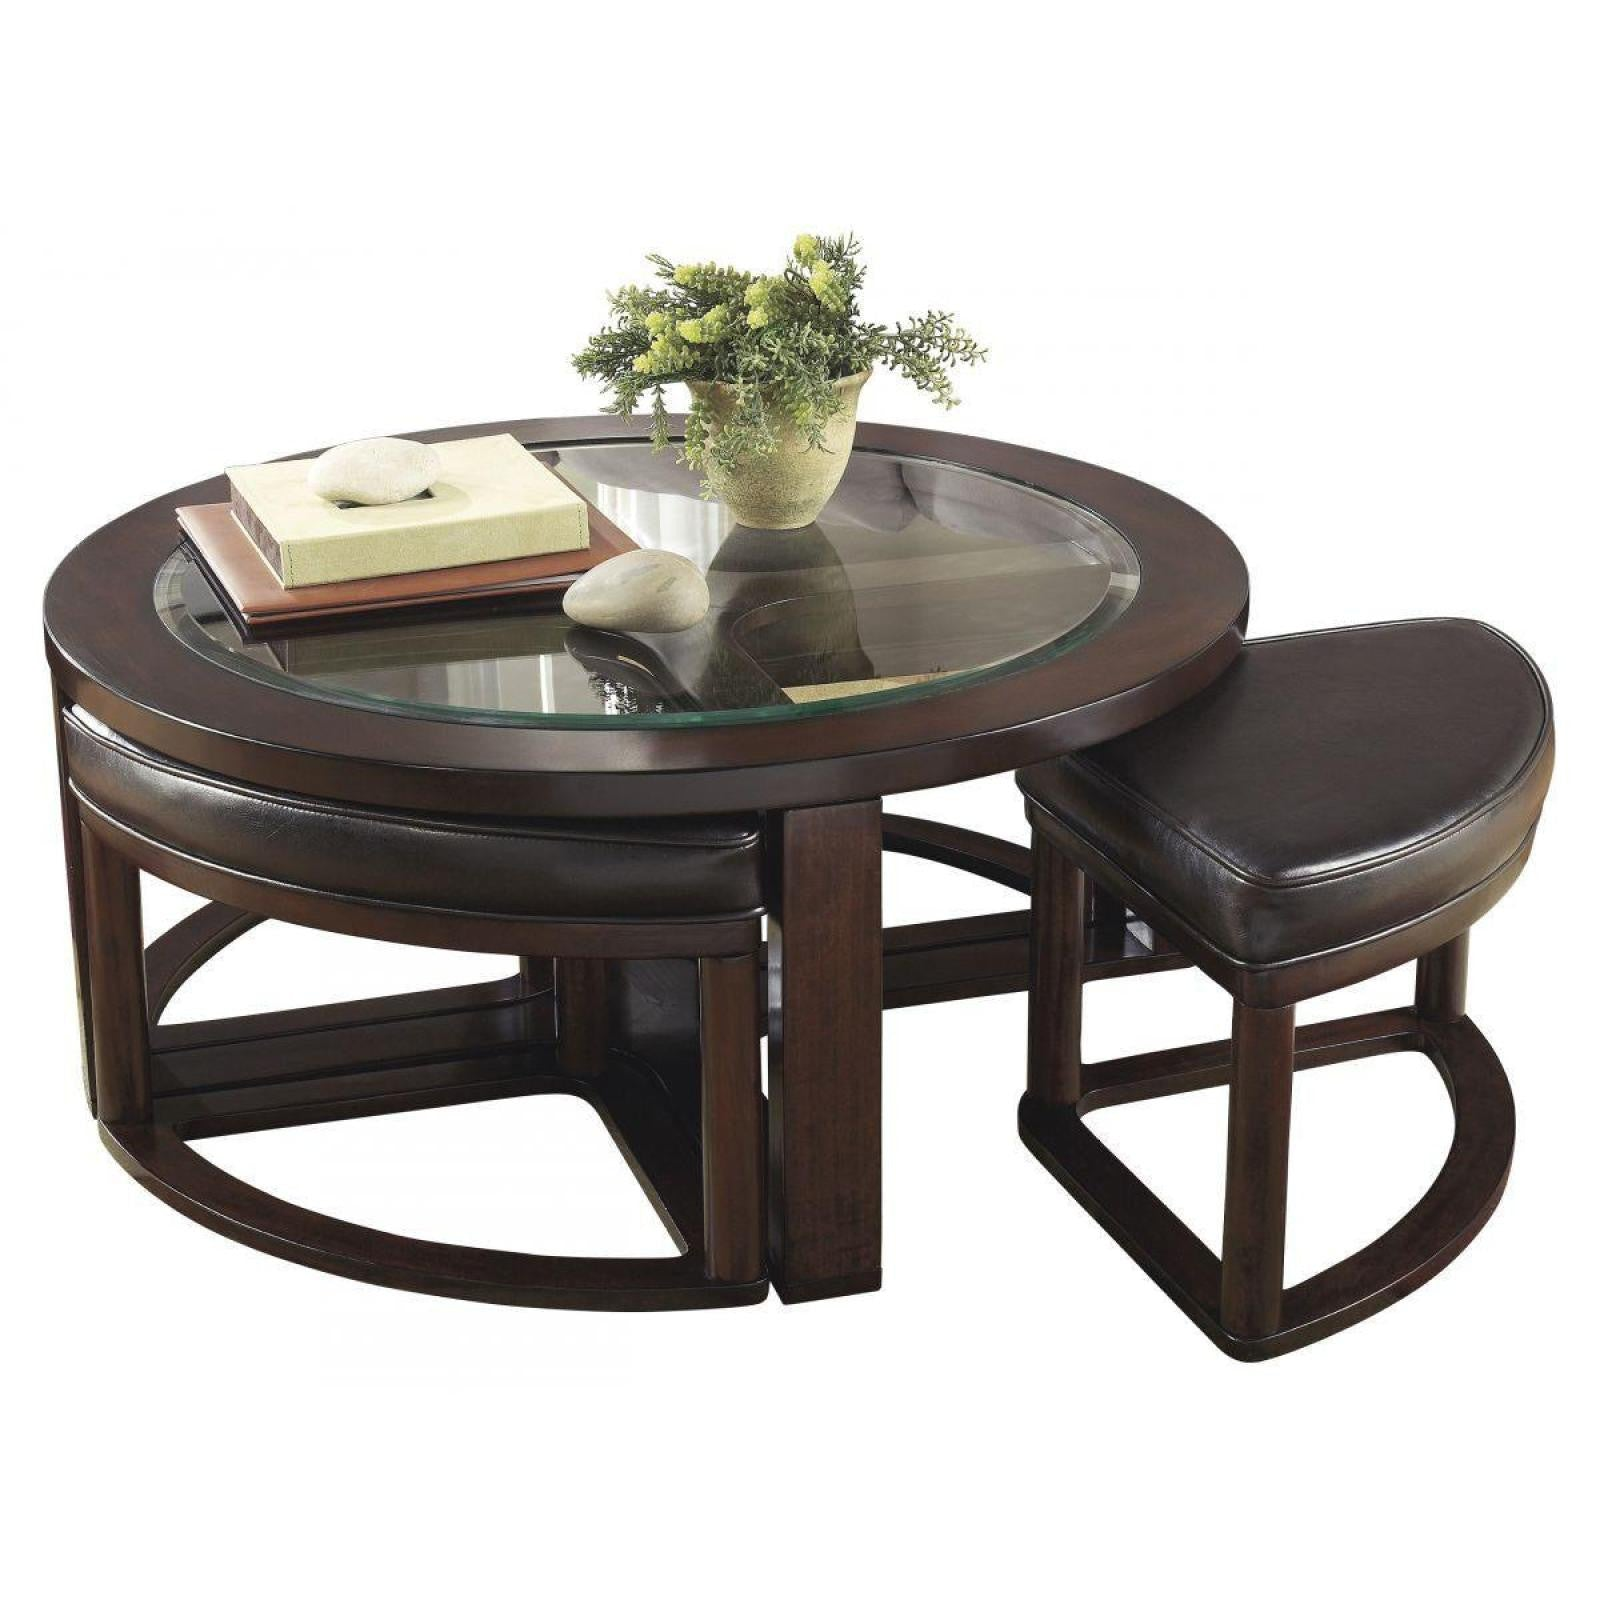 eclectic round furniture stools tables goods coffee categories rattan table category product with